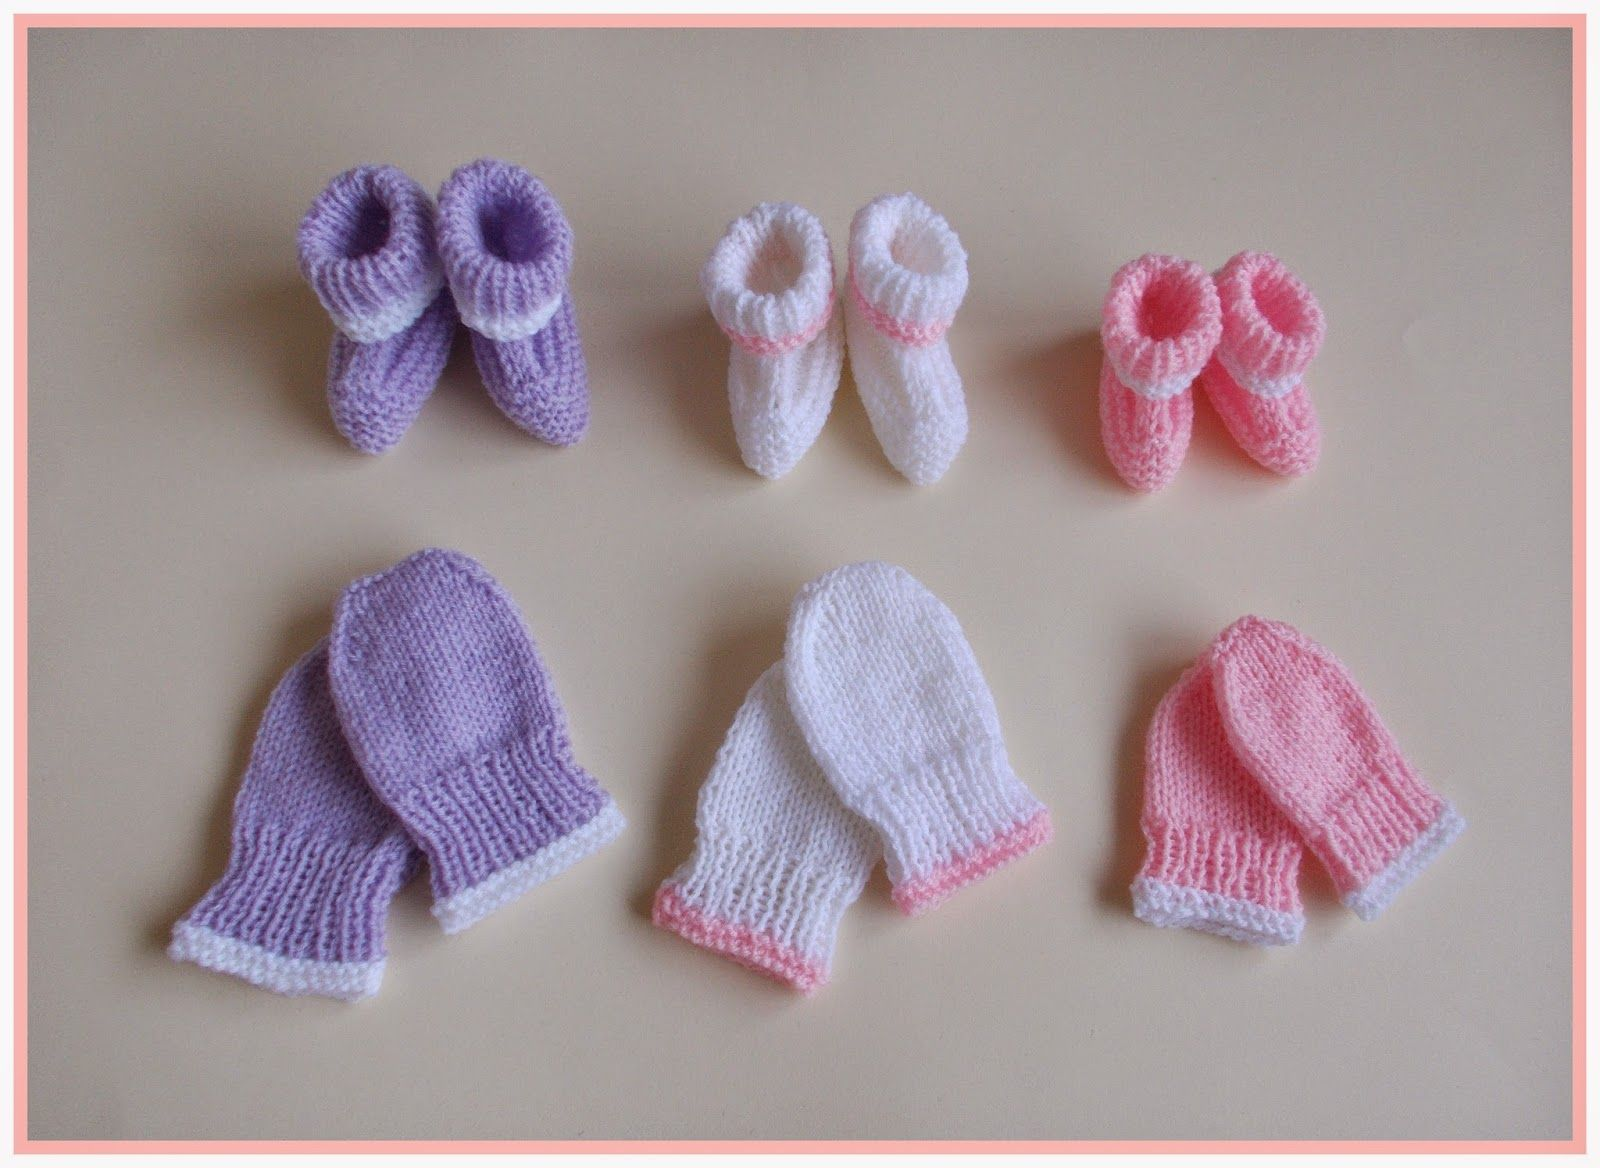 670a750a2 marianna's lazy daisy days: Premature & Newborn Baby Hat, Mittens ...